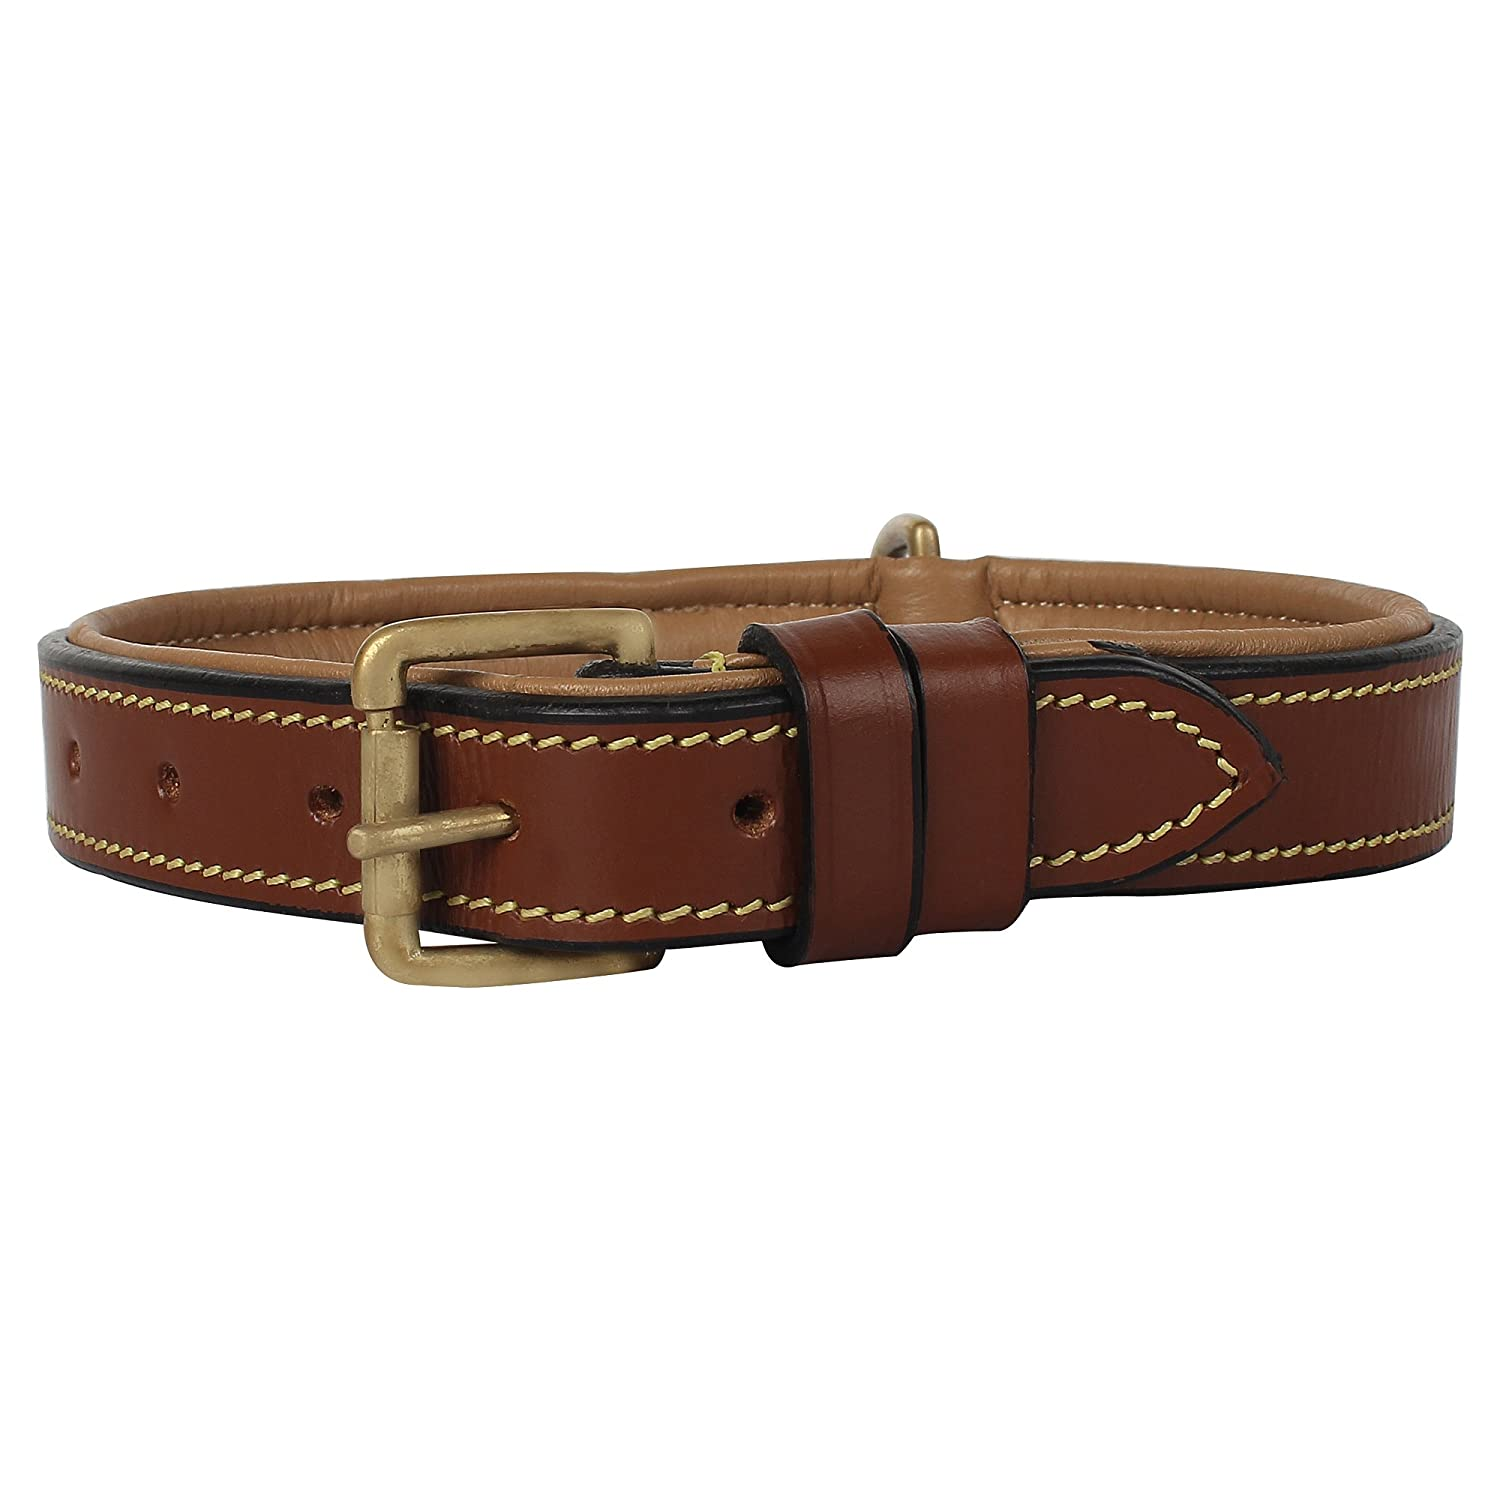 Brown Rustic Town Genuine Leather Dog Collar Pet Collar with Brass Buckles and D Rings for Name Tags Plate Perfect Size Collars for Small, Medium and Large Size Dog (10 to 19 inches)